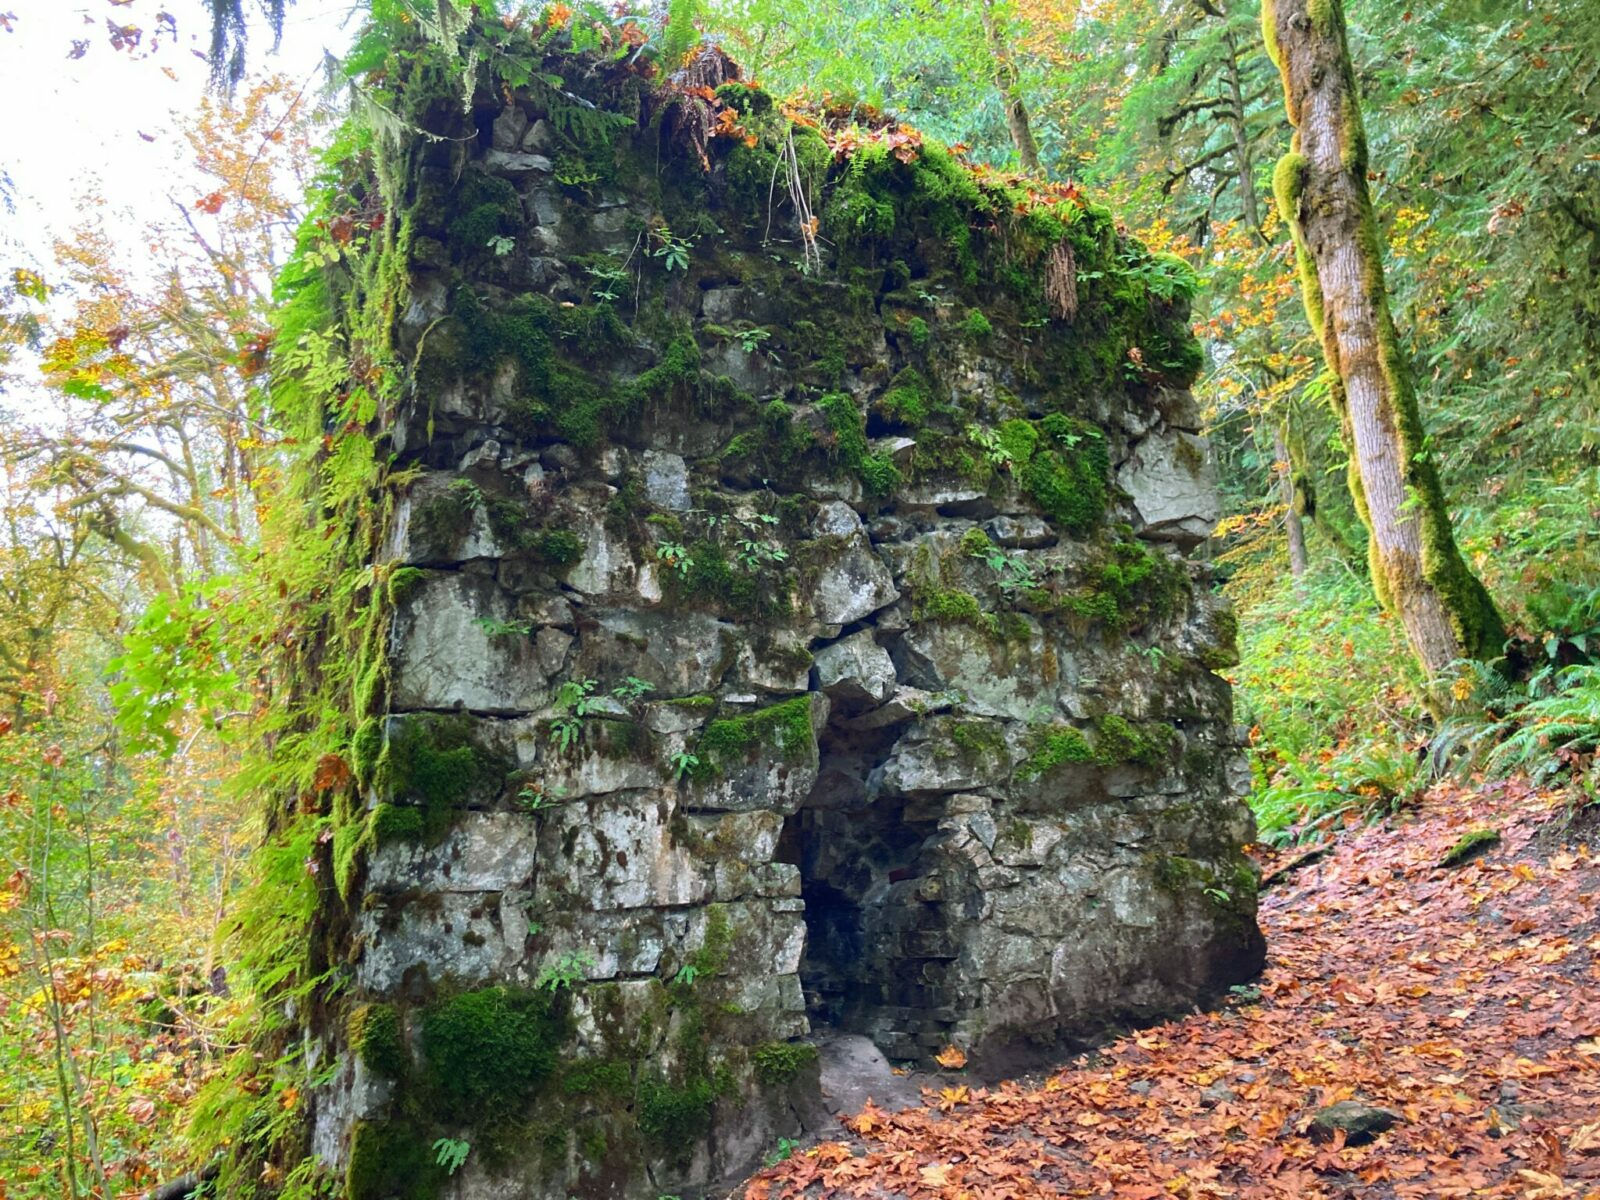 The lime kiln next to the lime kiln trail. It's a stone structure with moss and ferns on it and an open hole where the fire was built. it is in a forest and has fall leaves on the forest floor